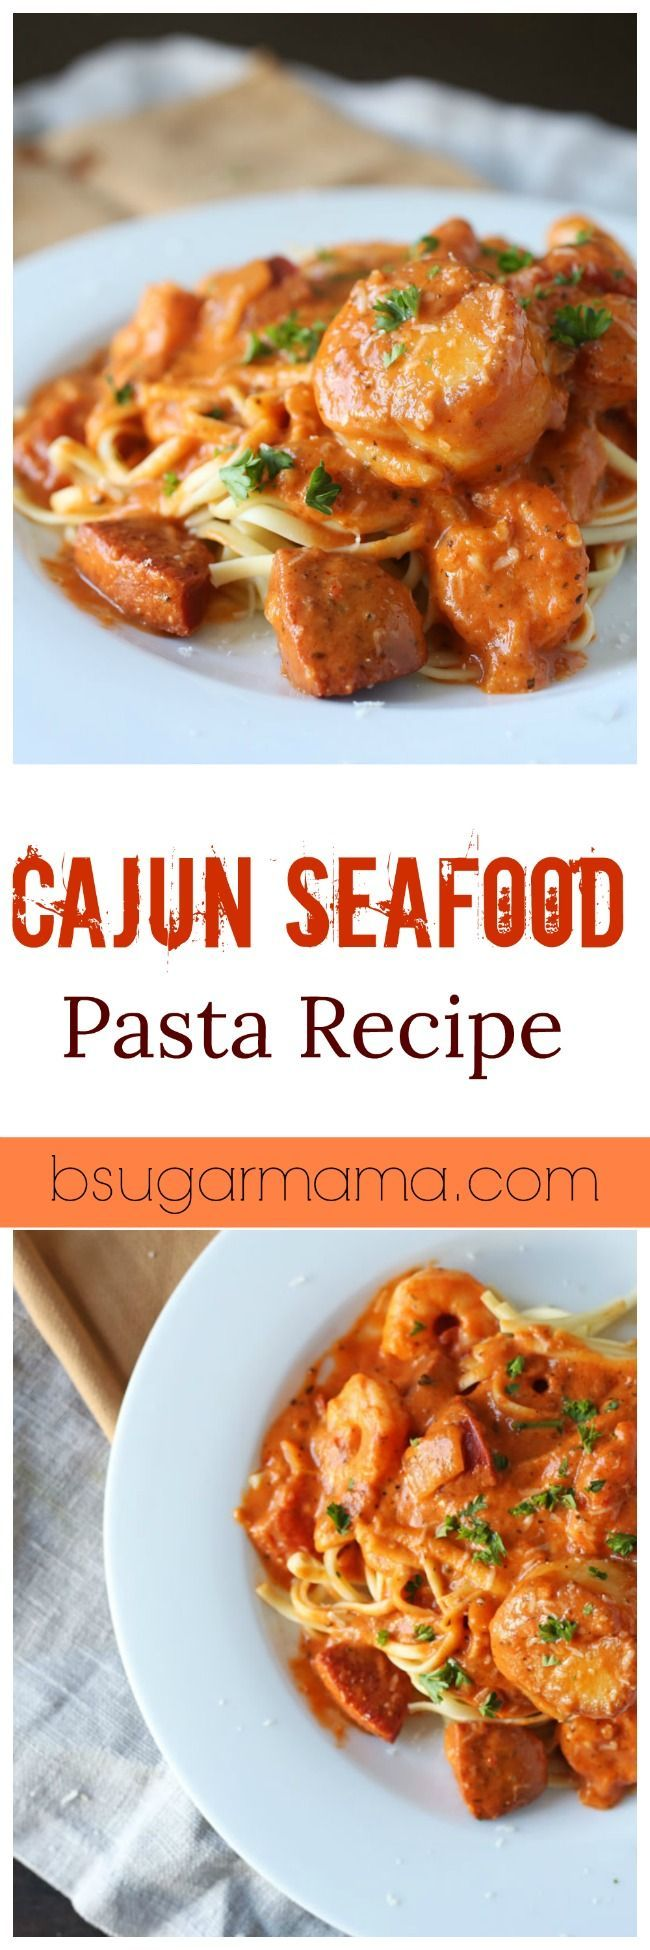 This Cajun Seafood Pasta Recipe is full of flavor and spice. Made with shrimp, spicy sausage, and sea scallops you will absolutely fall in love with this easy pasta recipe!